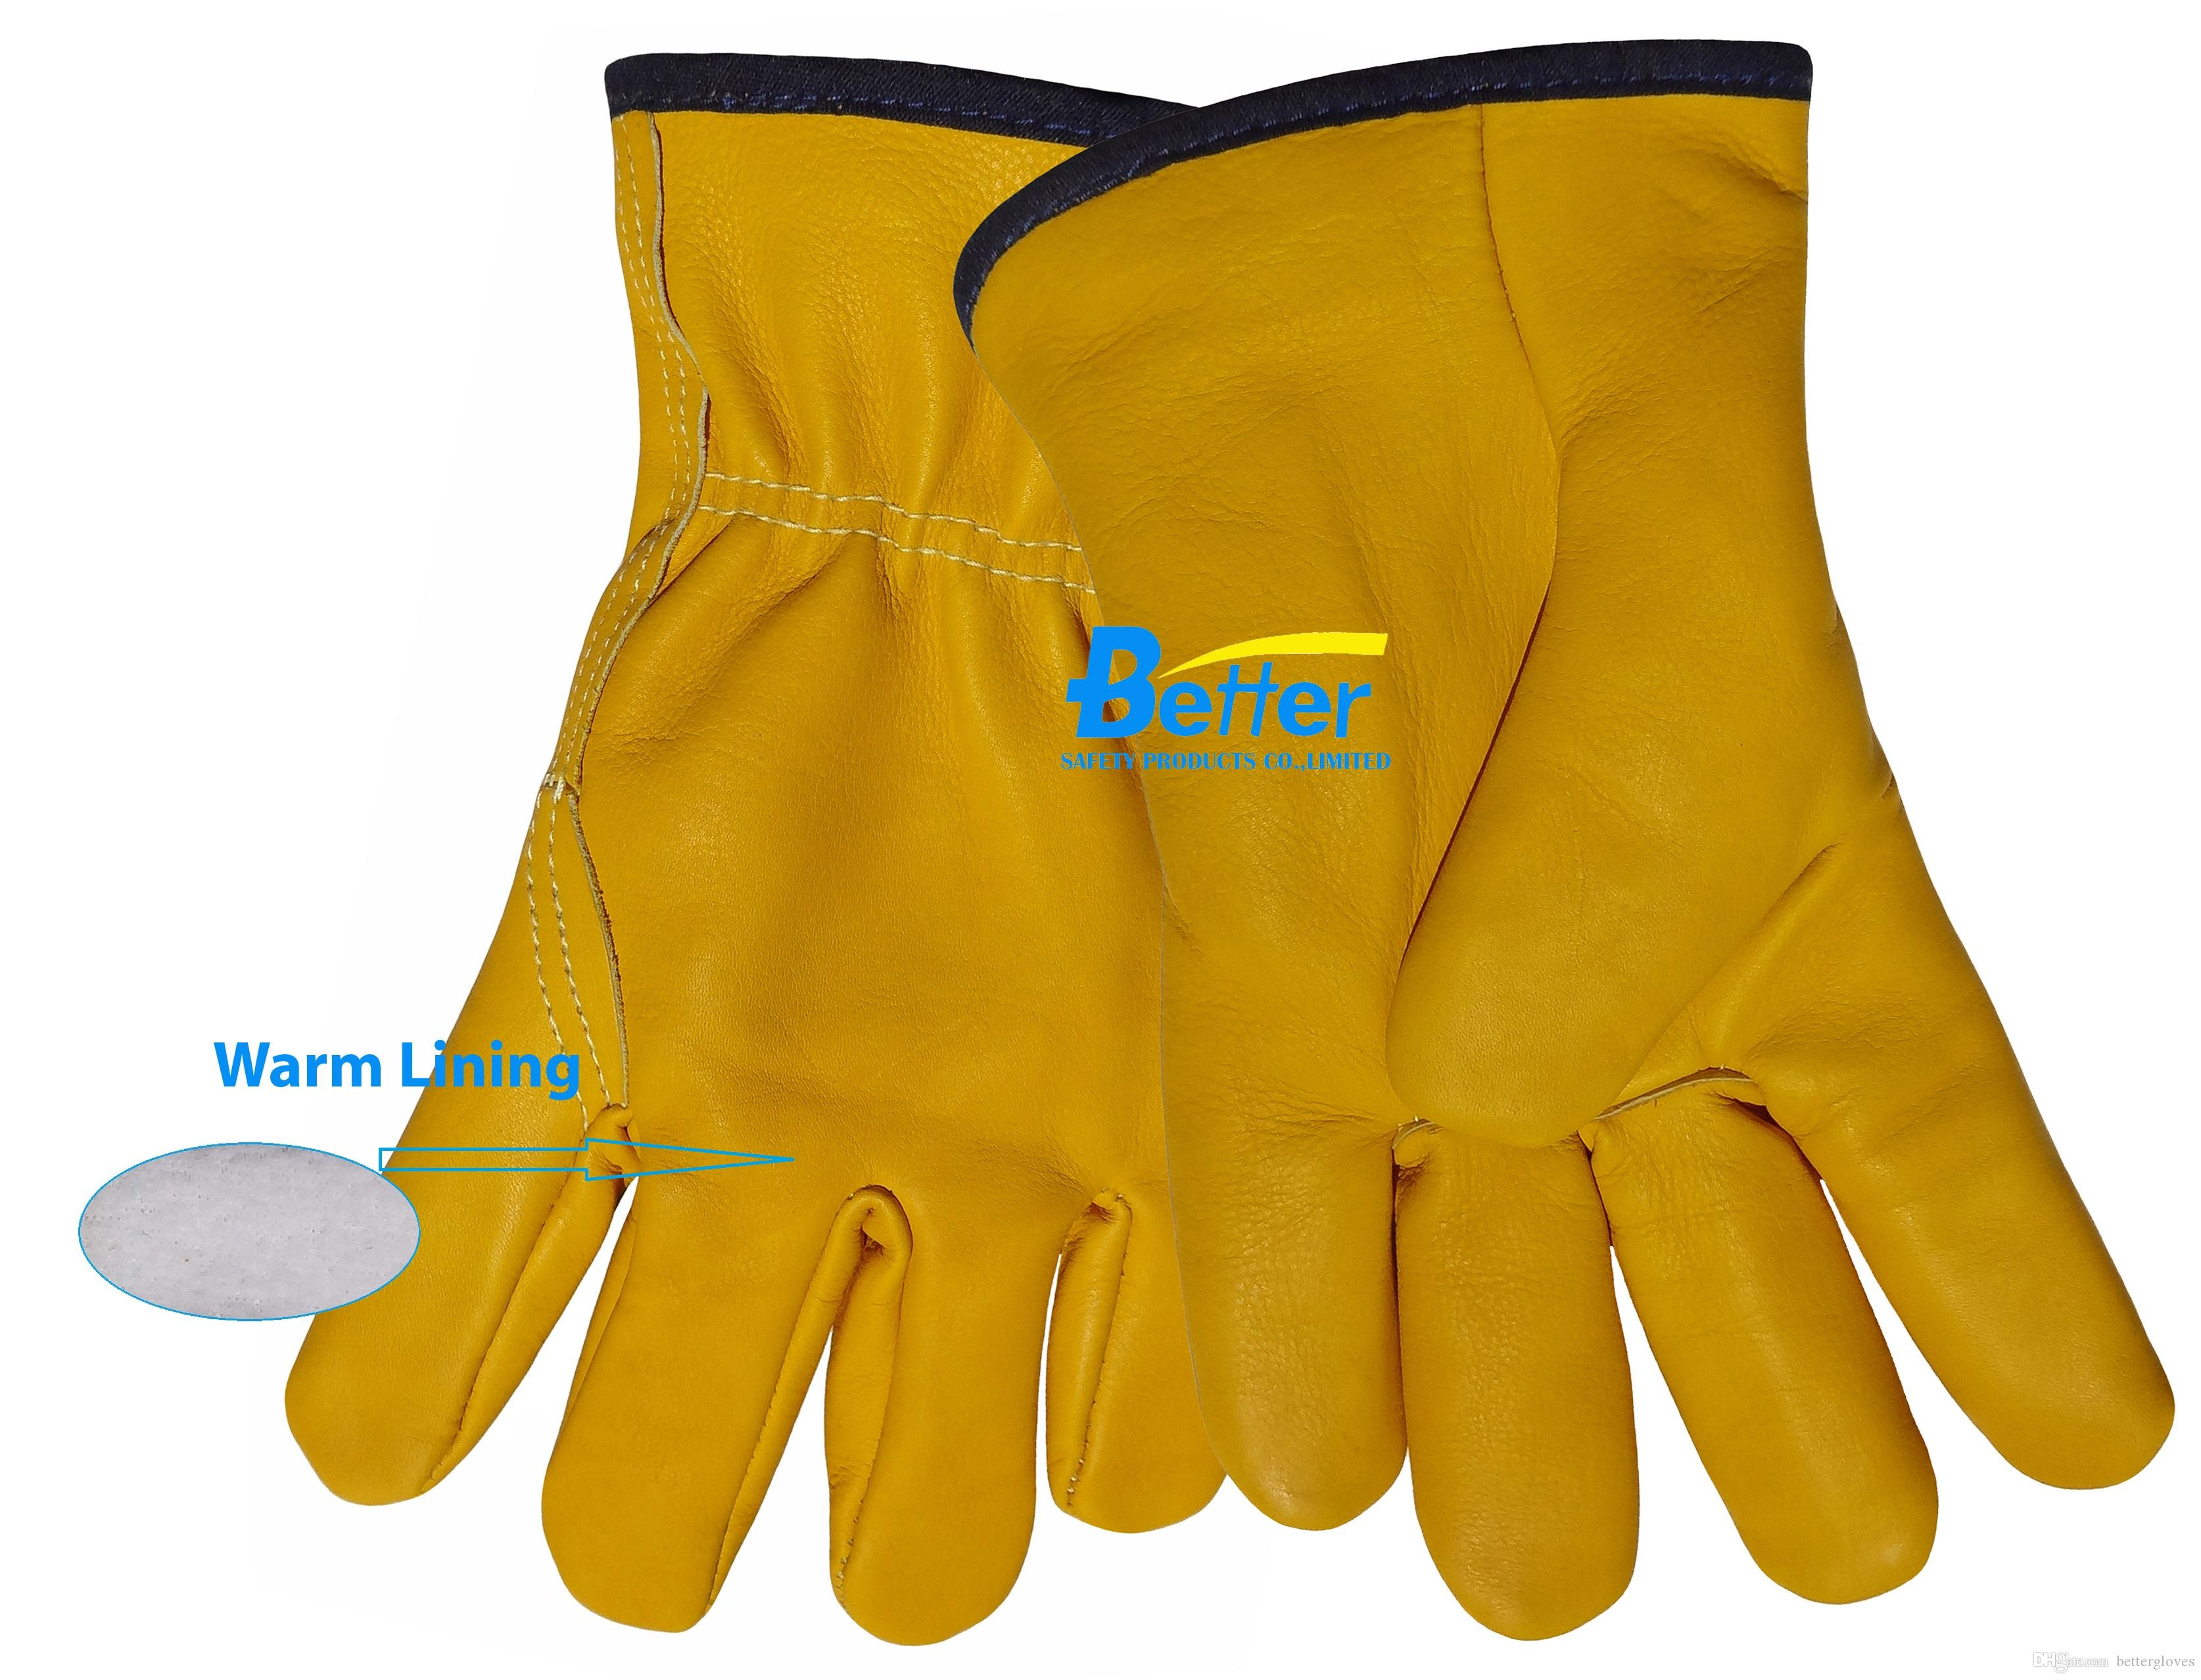 Leather work gloves for welding - Leather Driver Gloves Leather Welding Glove Warm Winter Cow Grain Leather Work Glove Leather Work Glove Work Glove Leather Driving Glove Online With